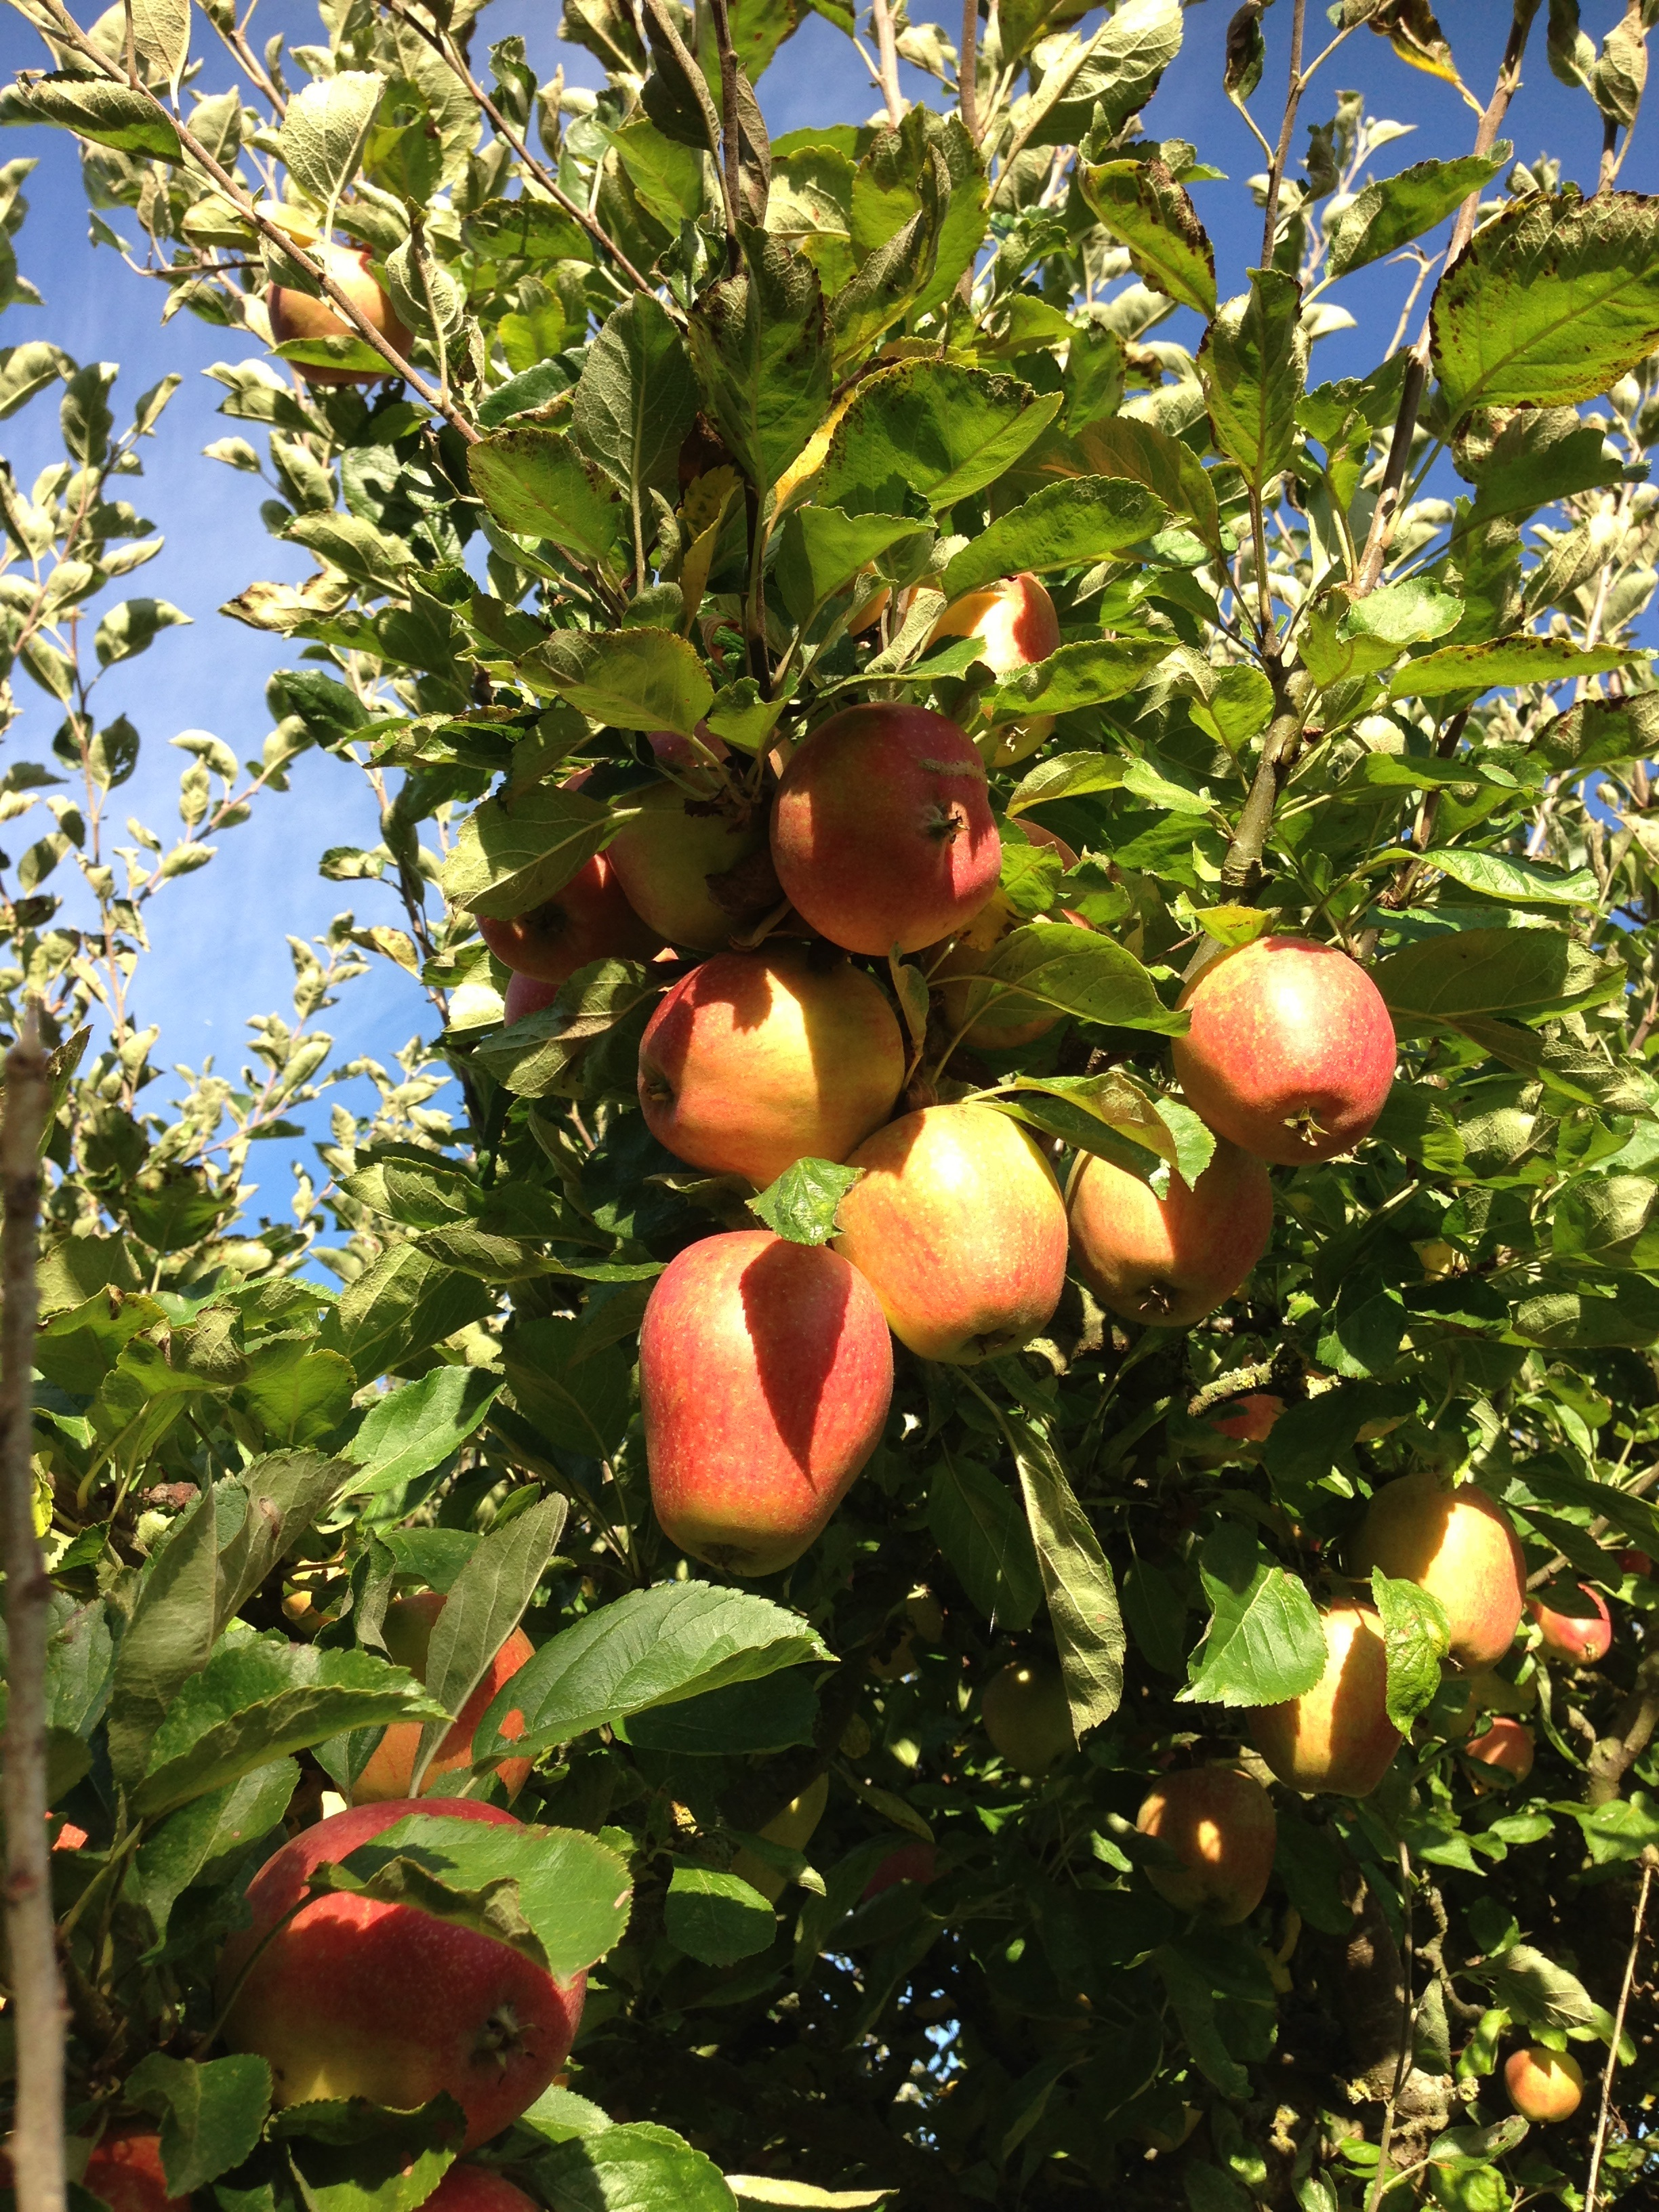 Tiddly Pommes - apples on apple tree branch